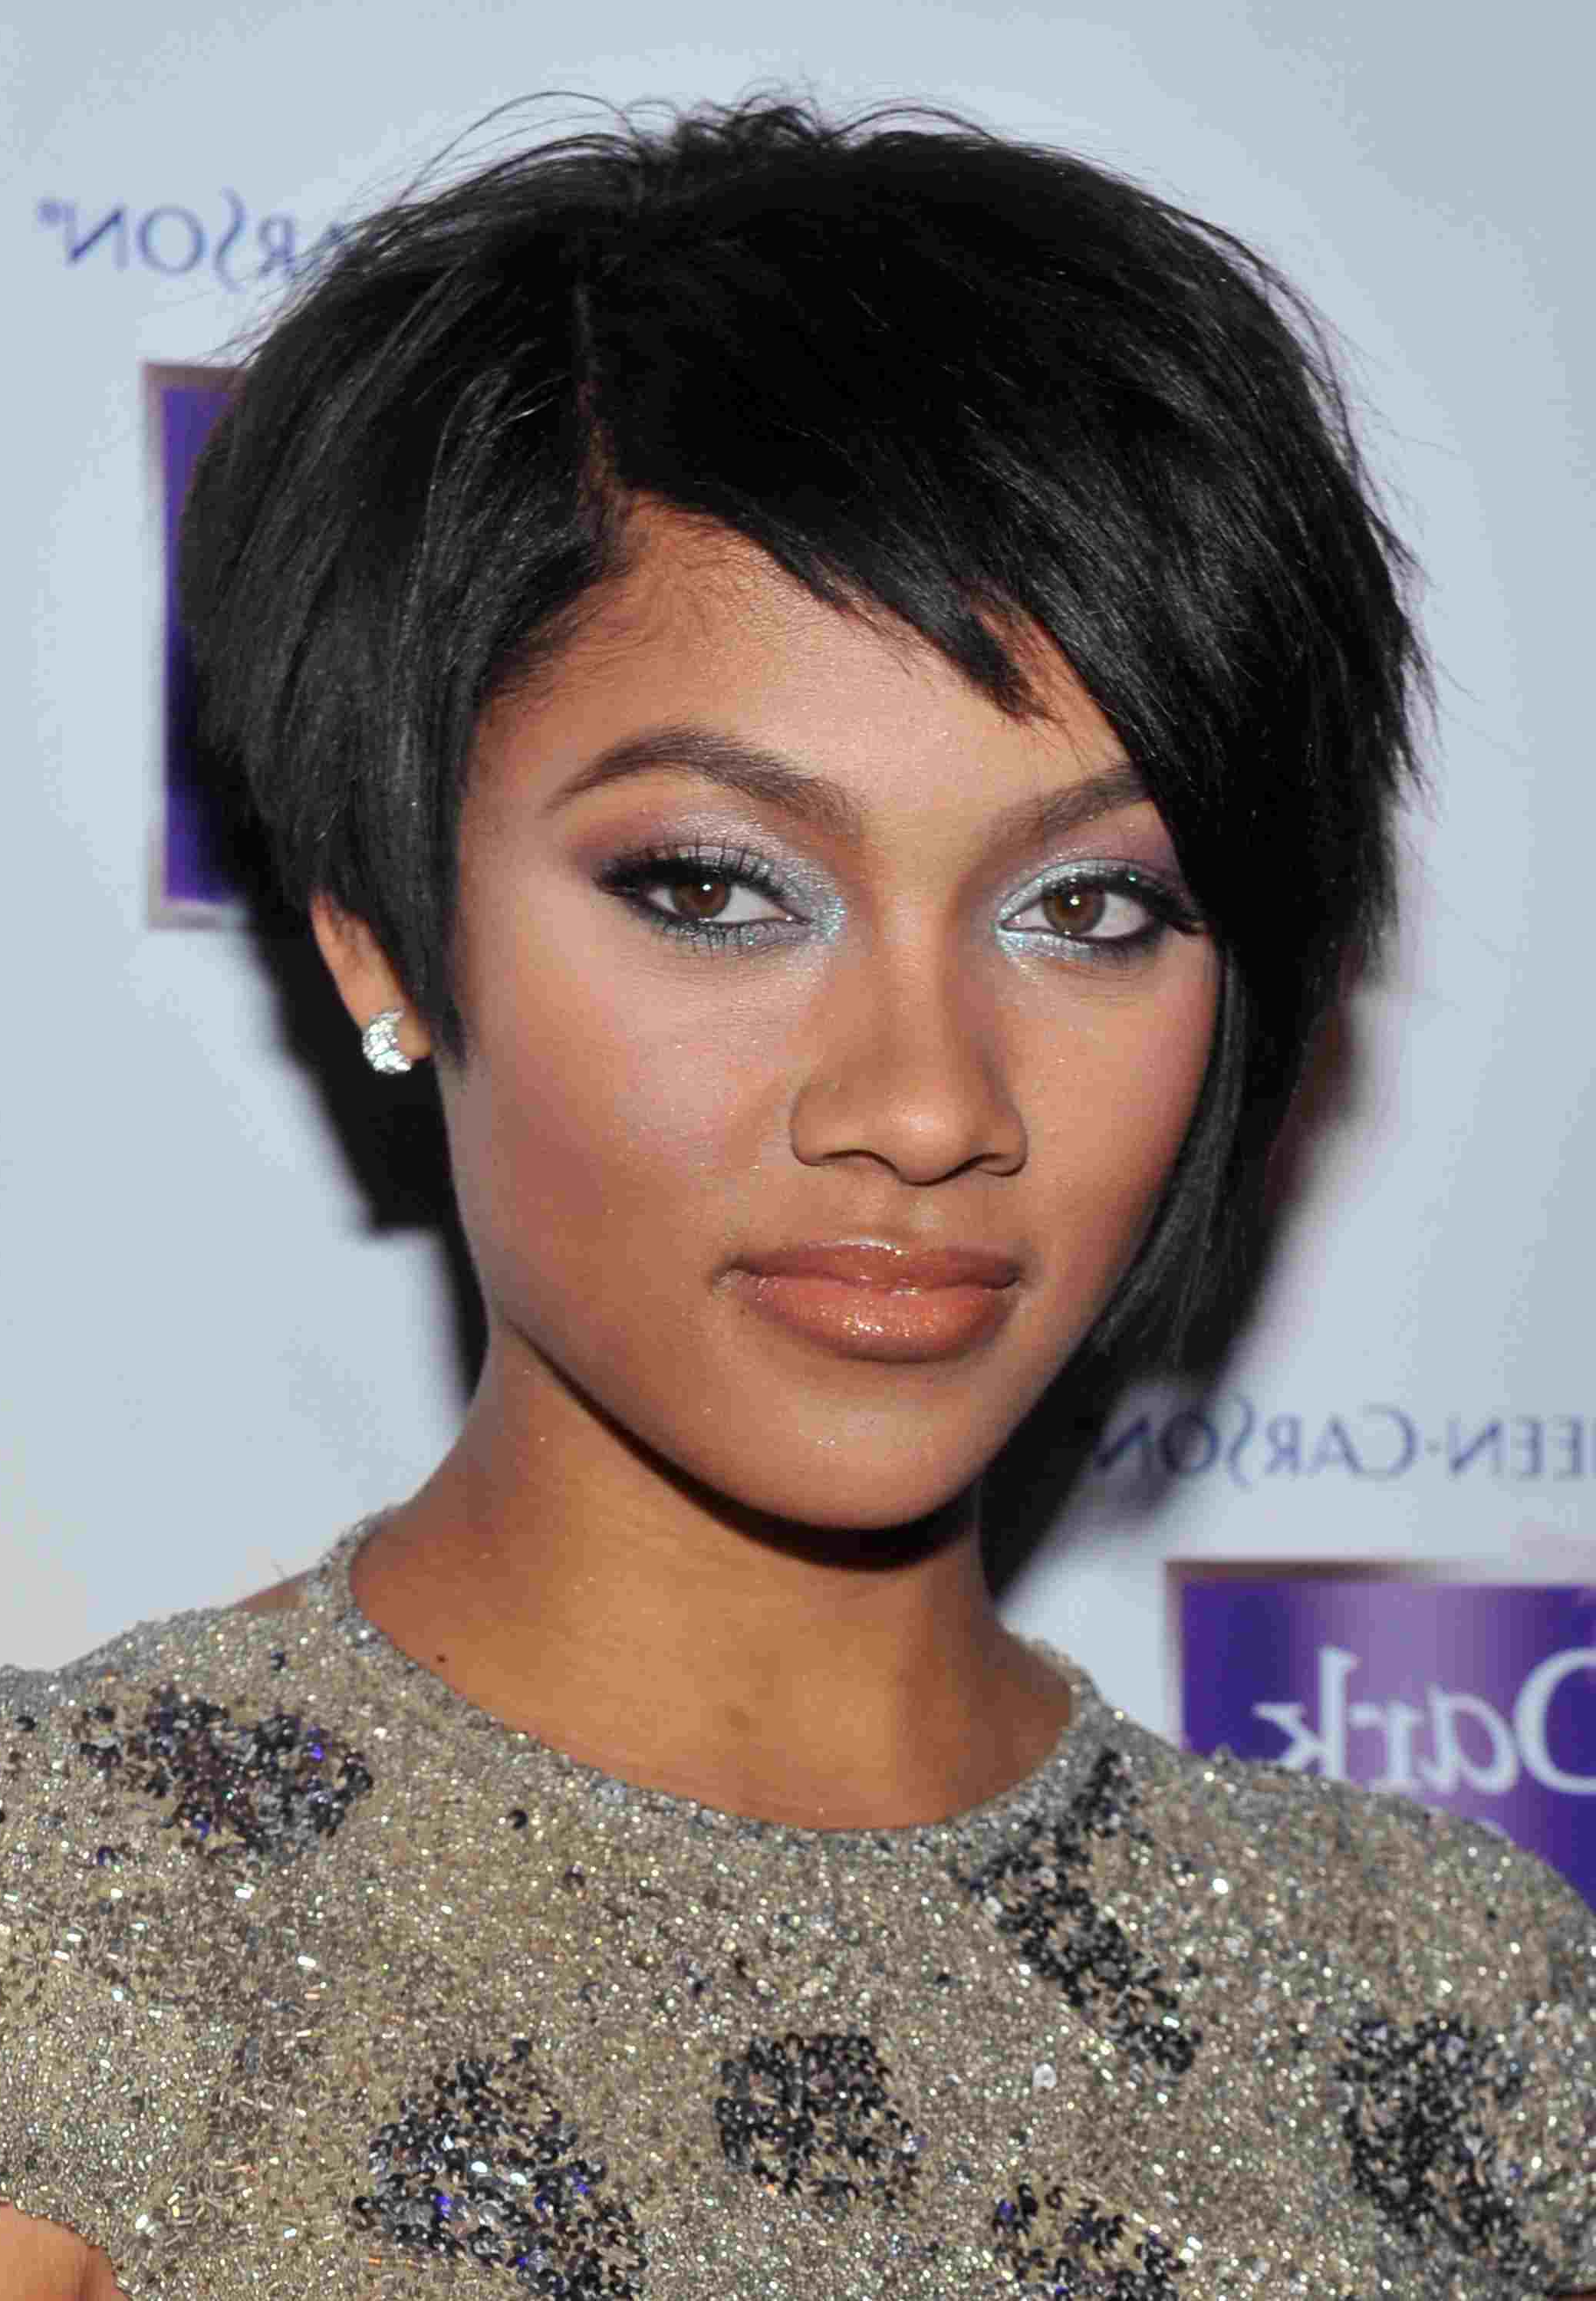 Short, Edgy Haircuts For Black Women Inside Edgy Short Haircuts For Black Women (View 23 of 25)